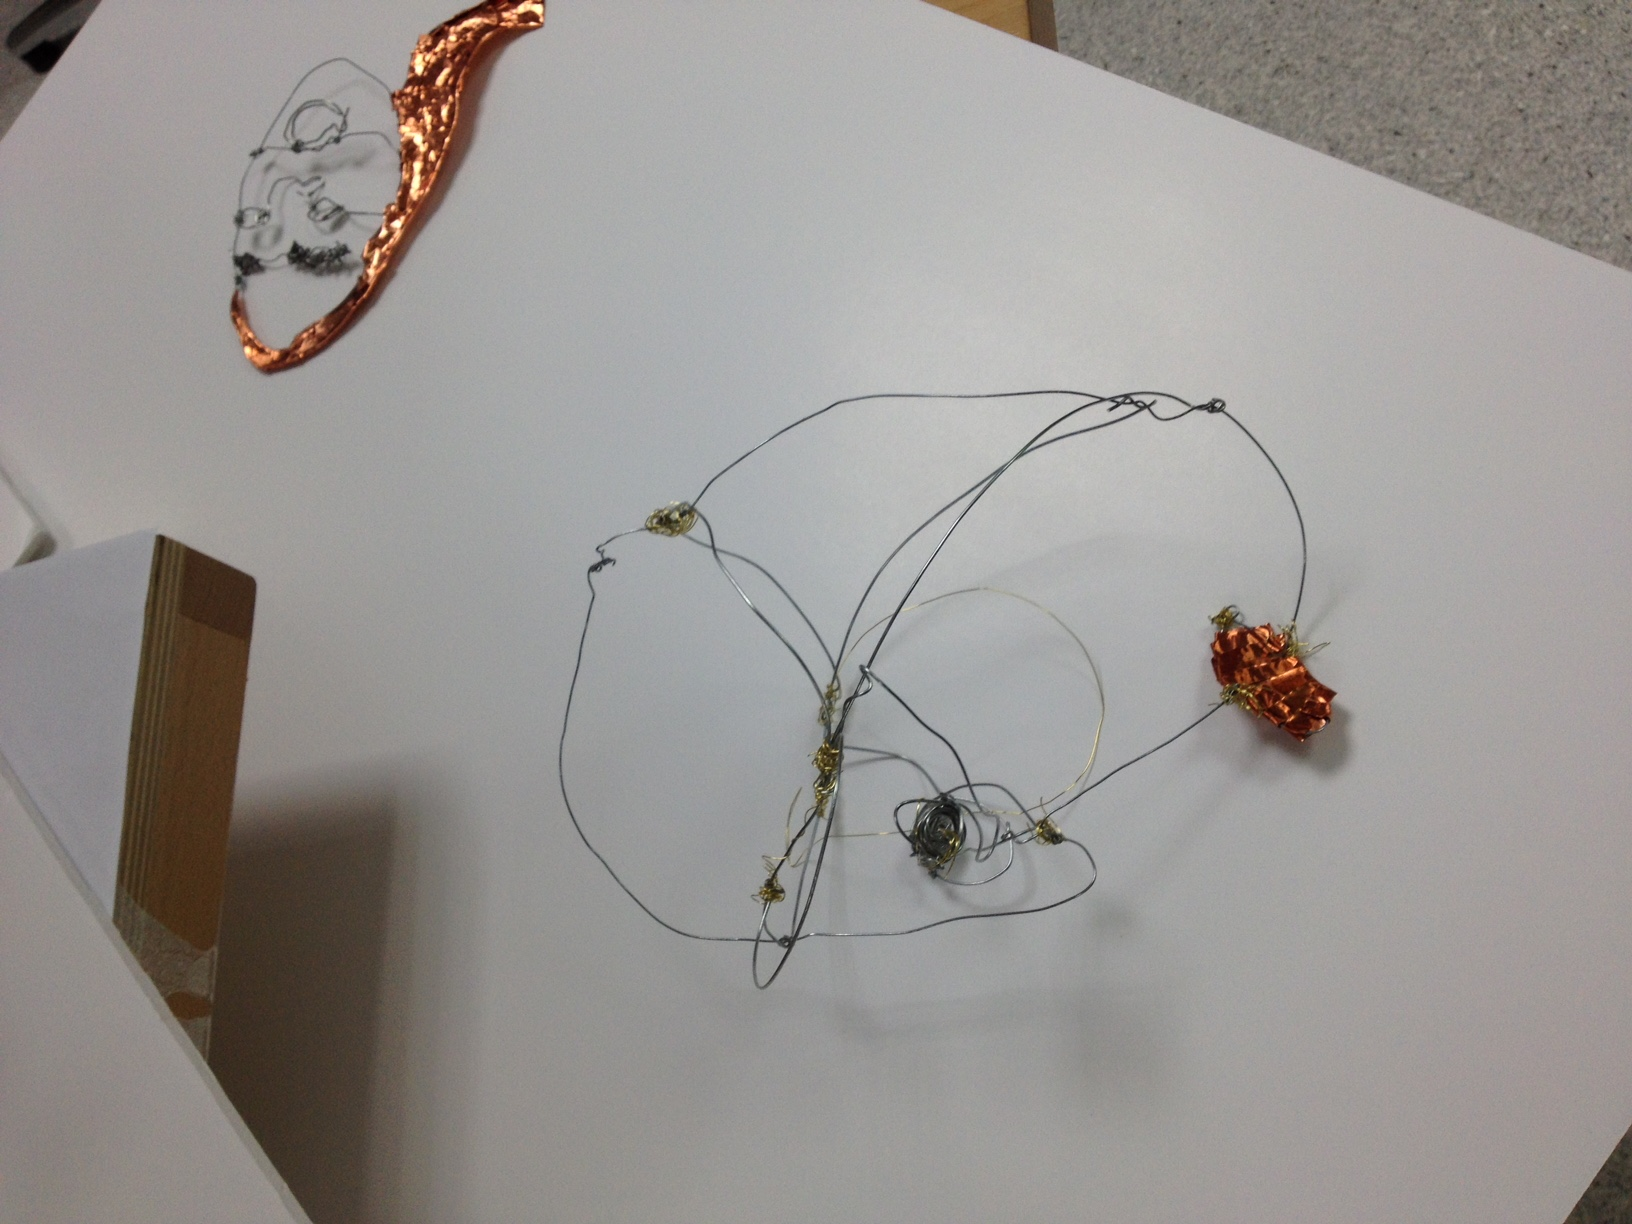 december-2016-drawing-with-wire-made-by-creative-mentor-cara-george-with-fairley-house-studetns-studetns